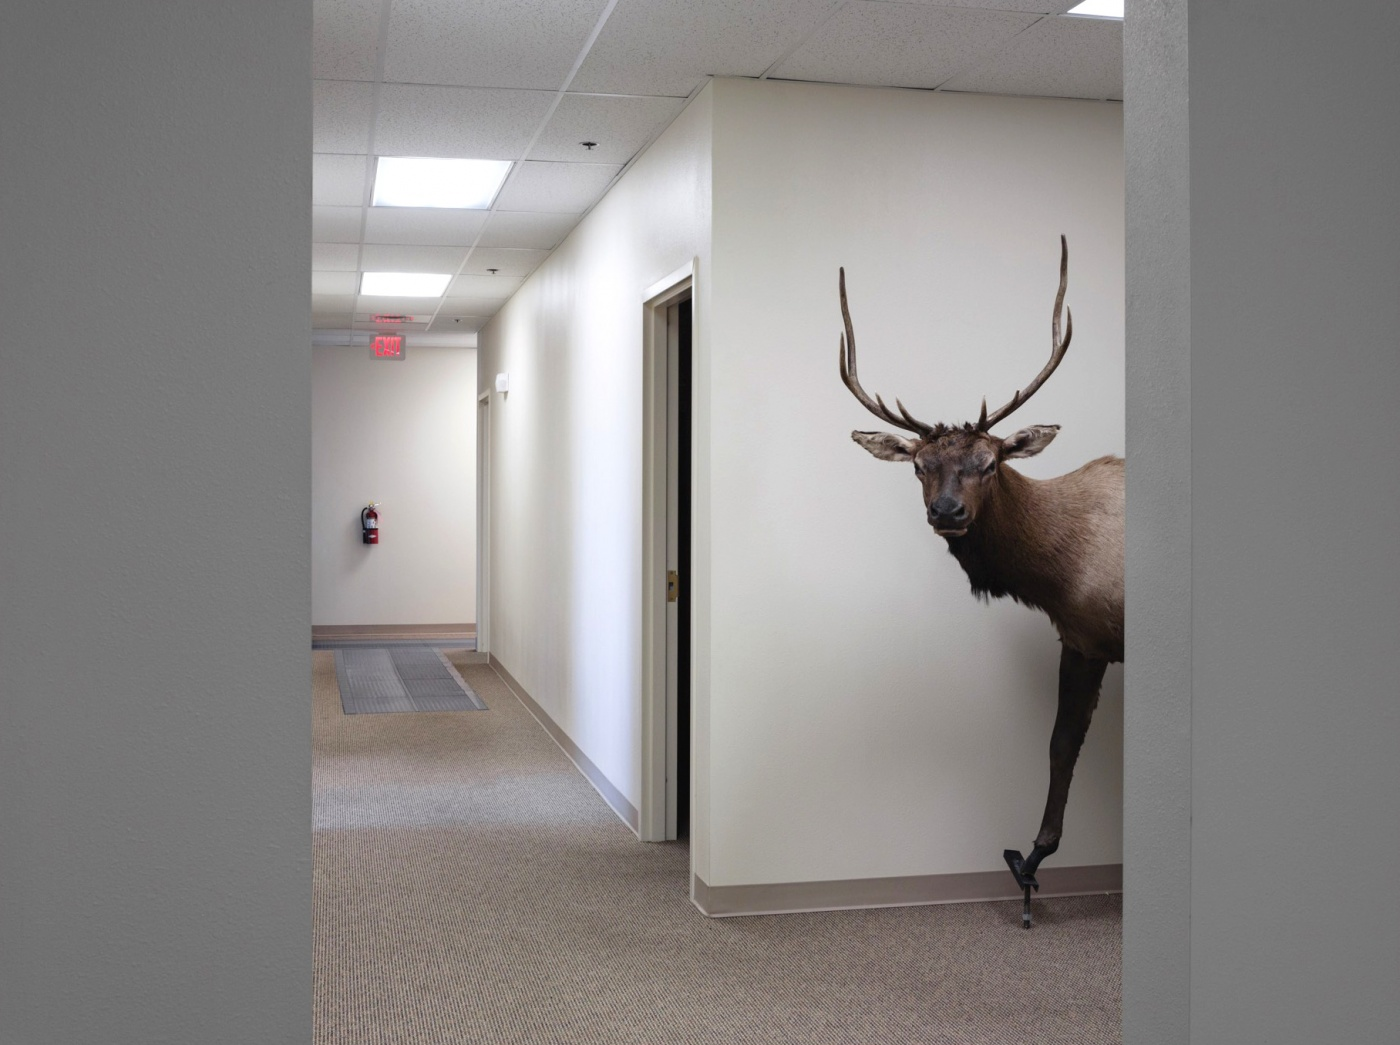 A stuffed elk stands in an office hallway.